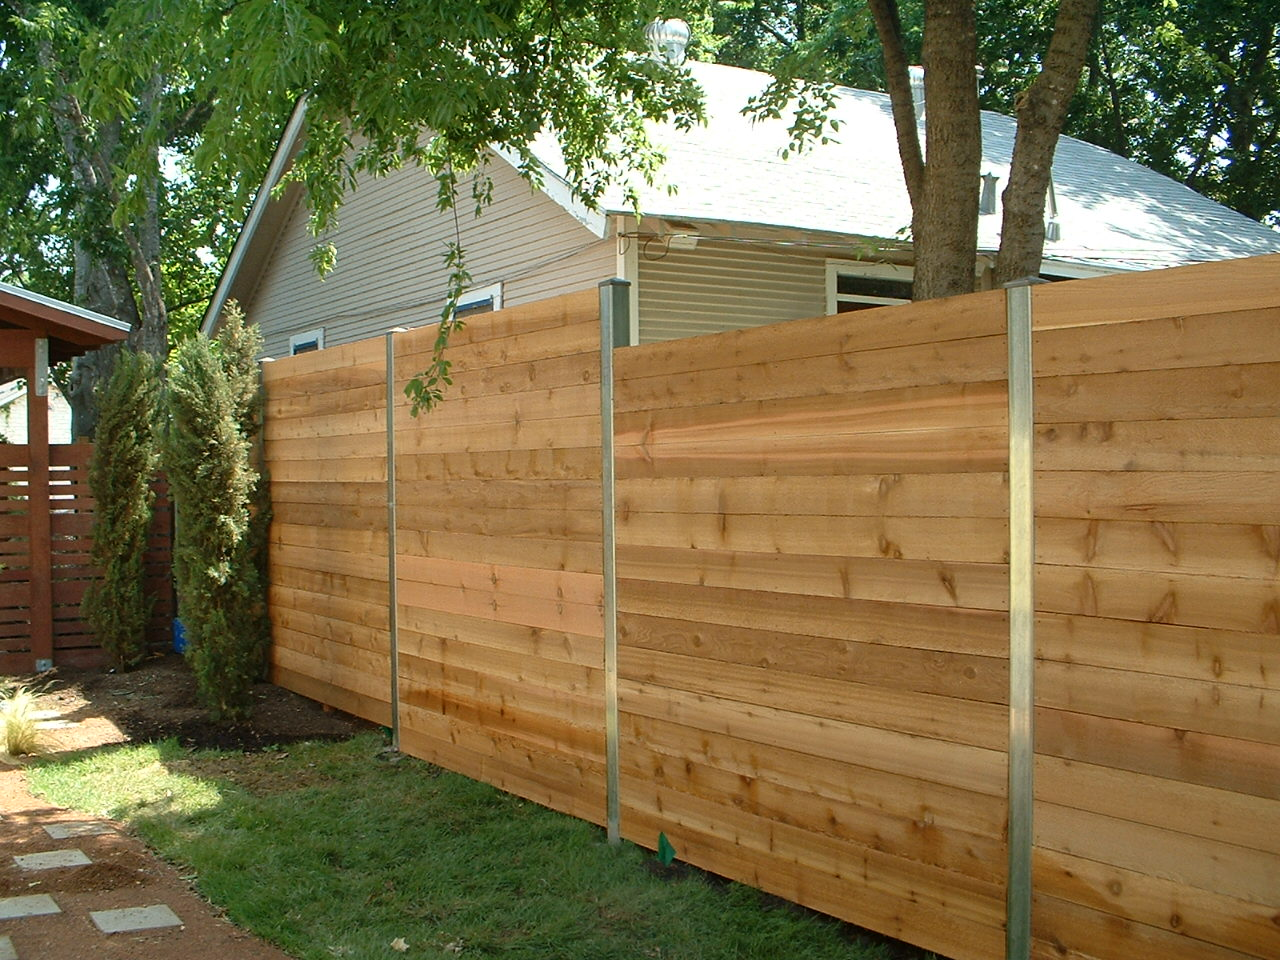 Picture of: Metal Fence Posts for Wood Fence Photo